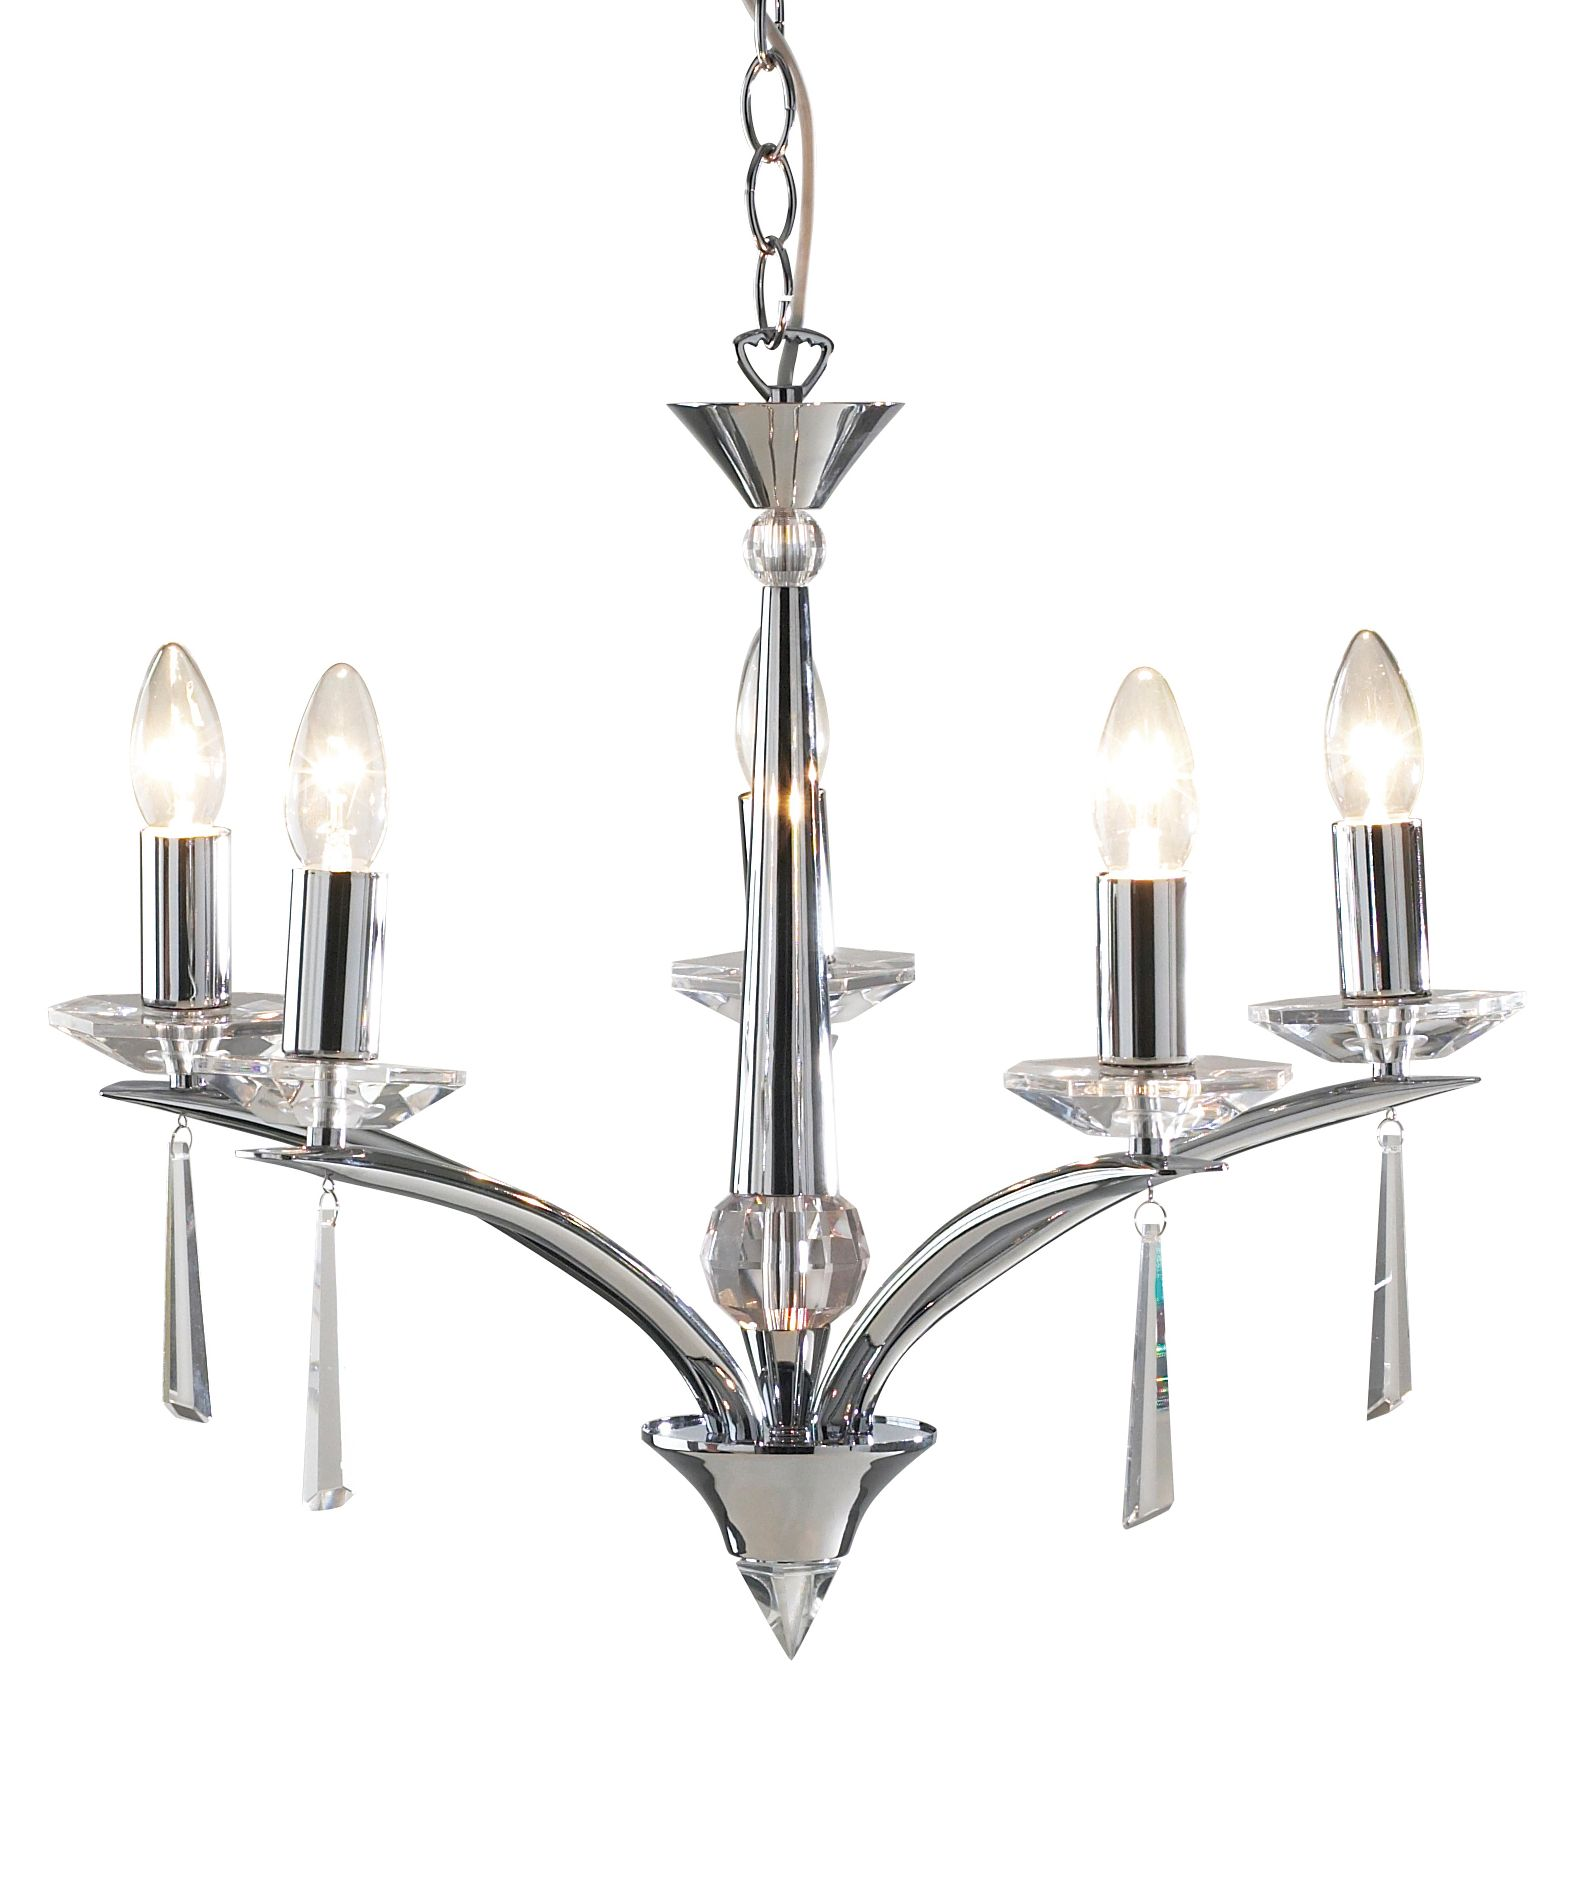 Hyperion five arm ceiling light by House of Fraser